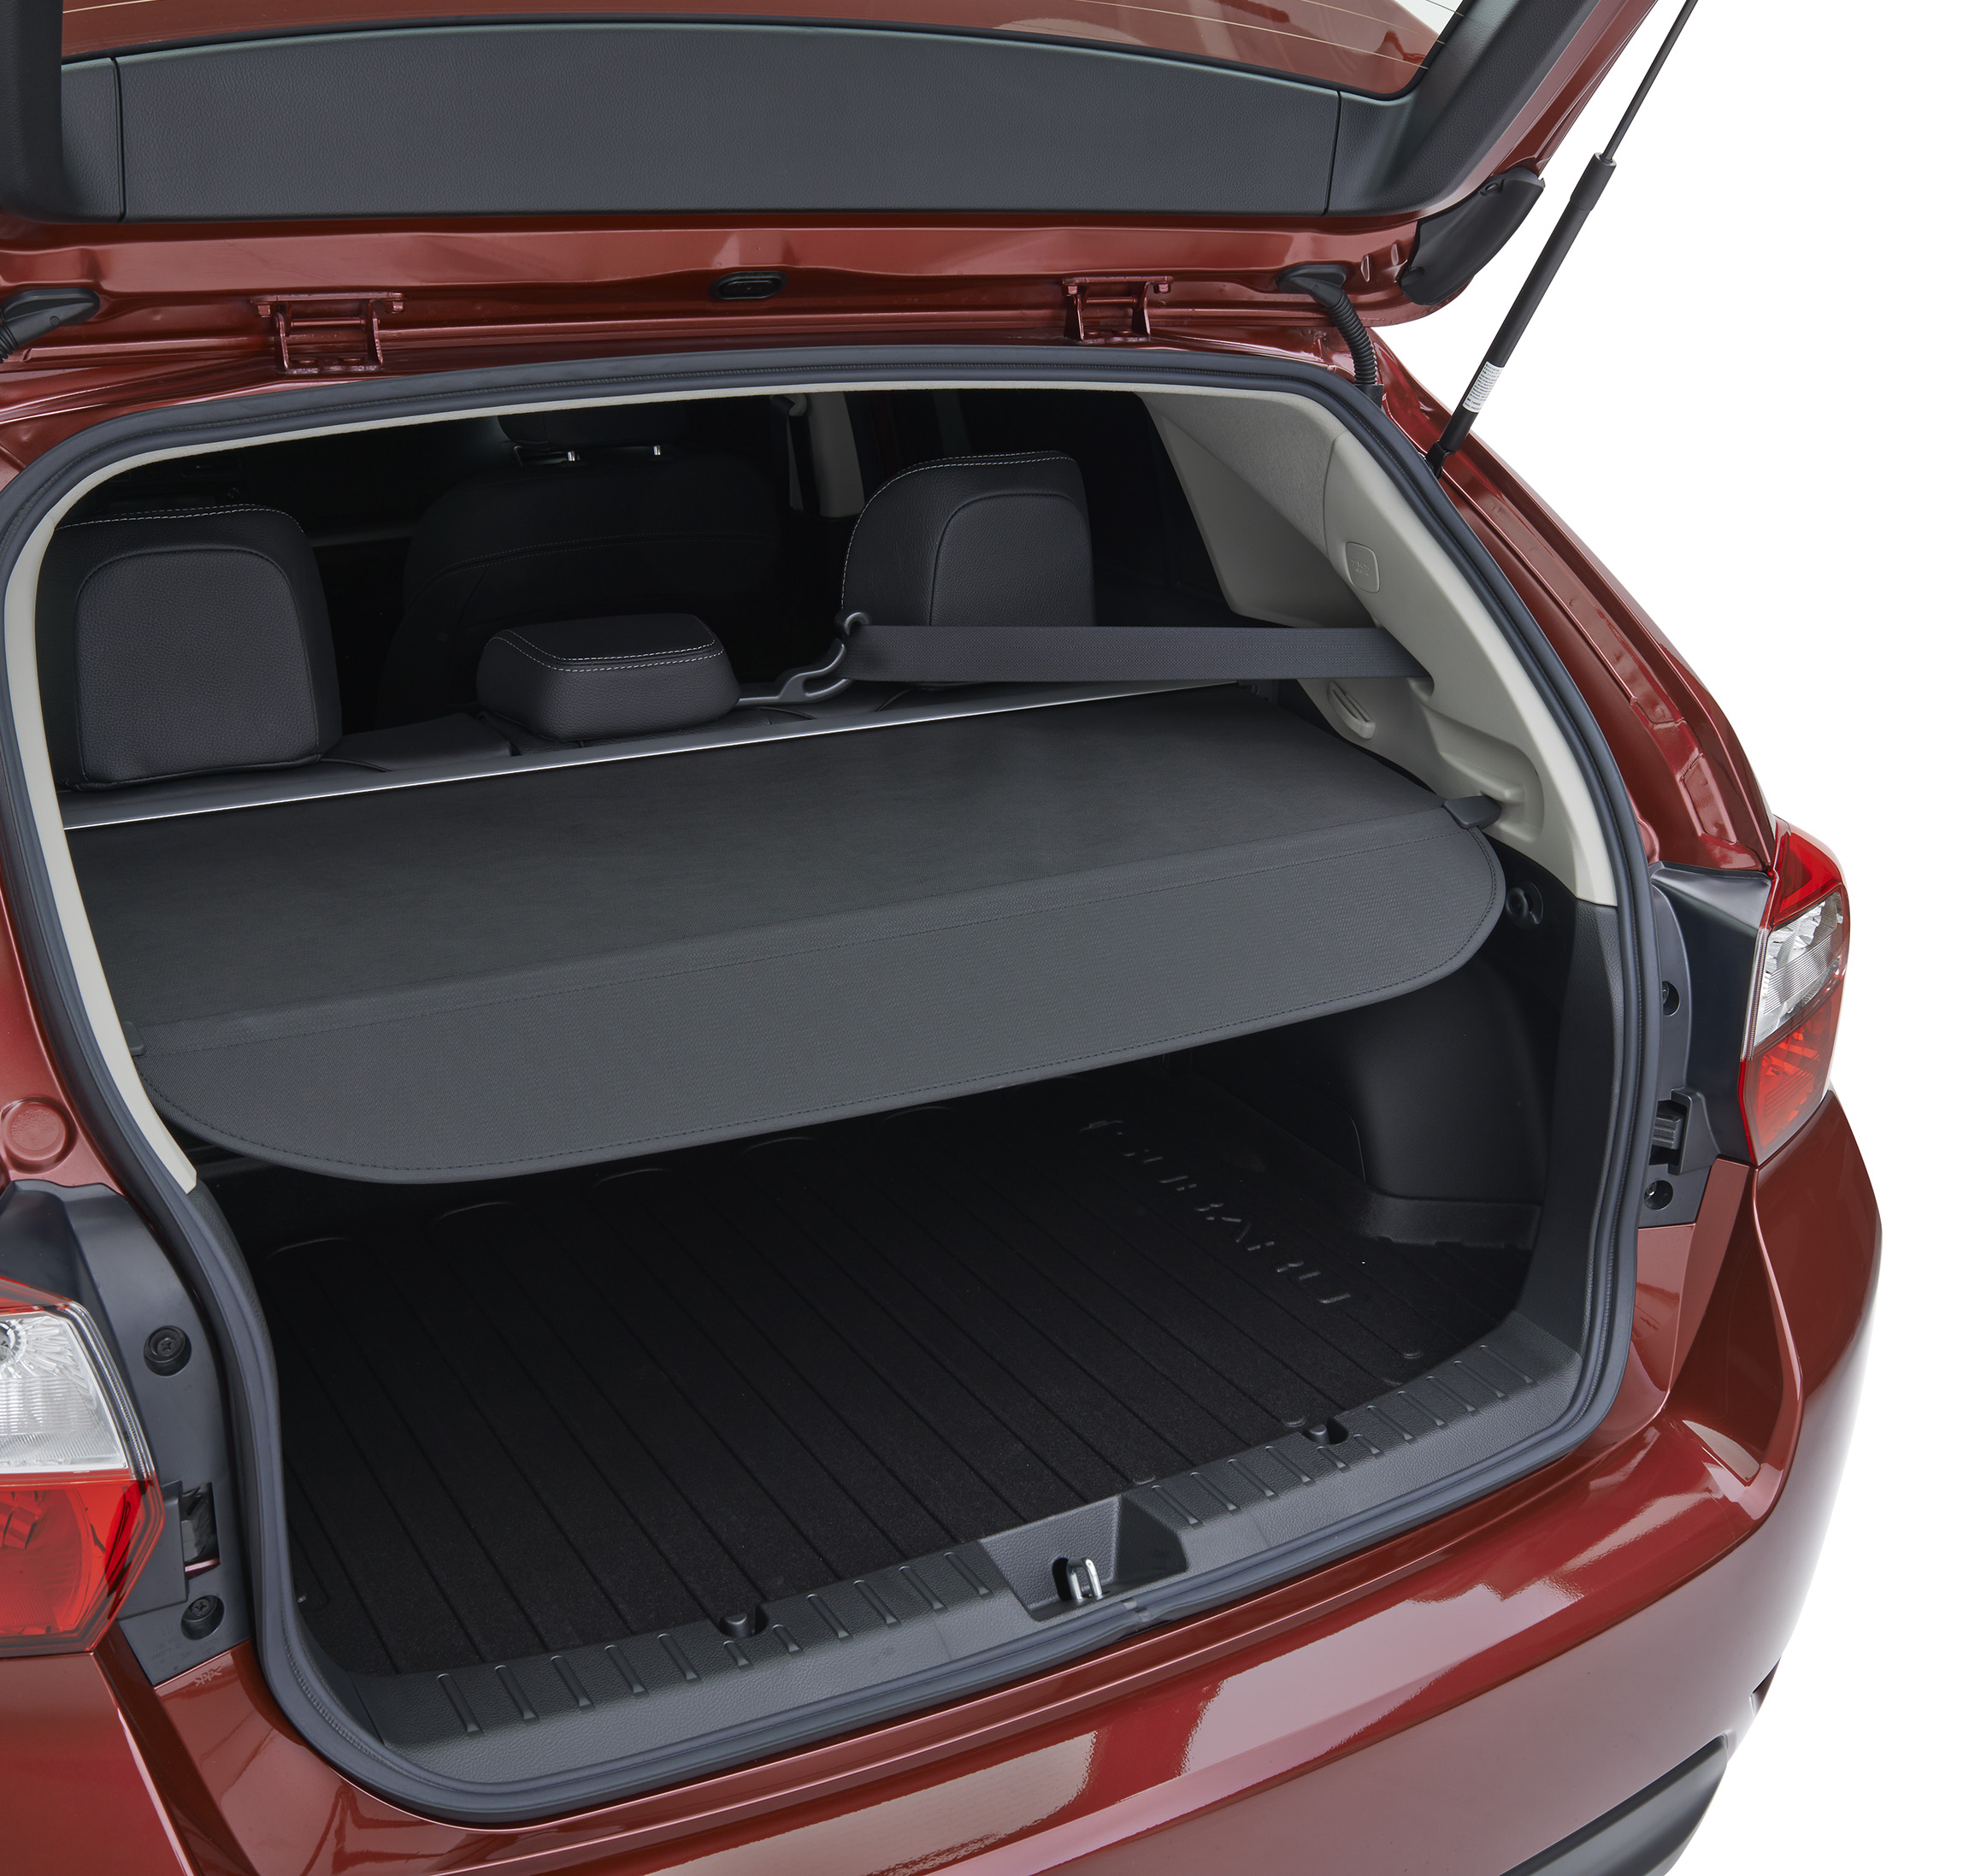 Subaru Luggage Compartment Cover. Helps To